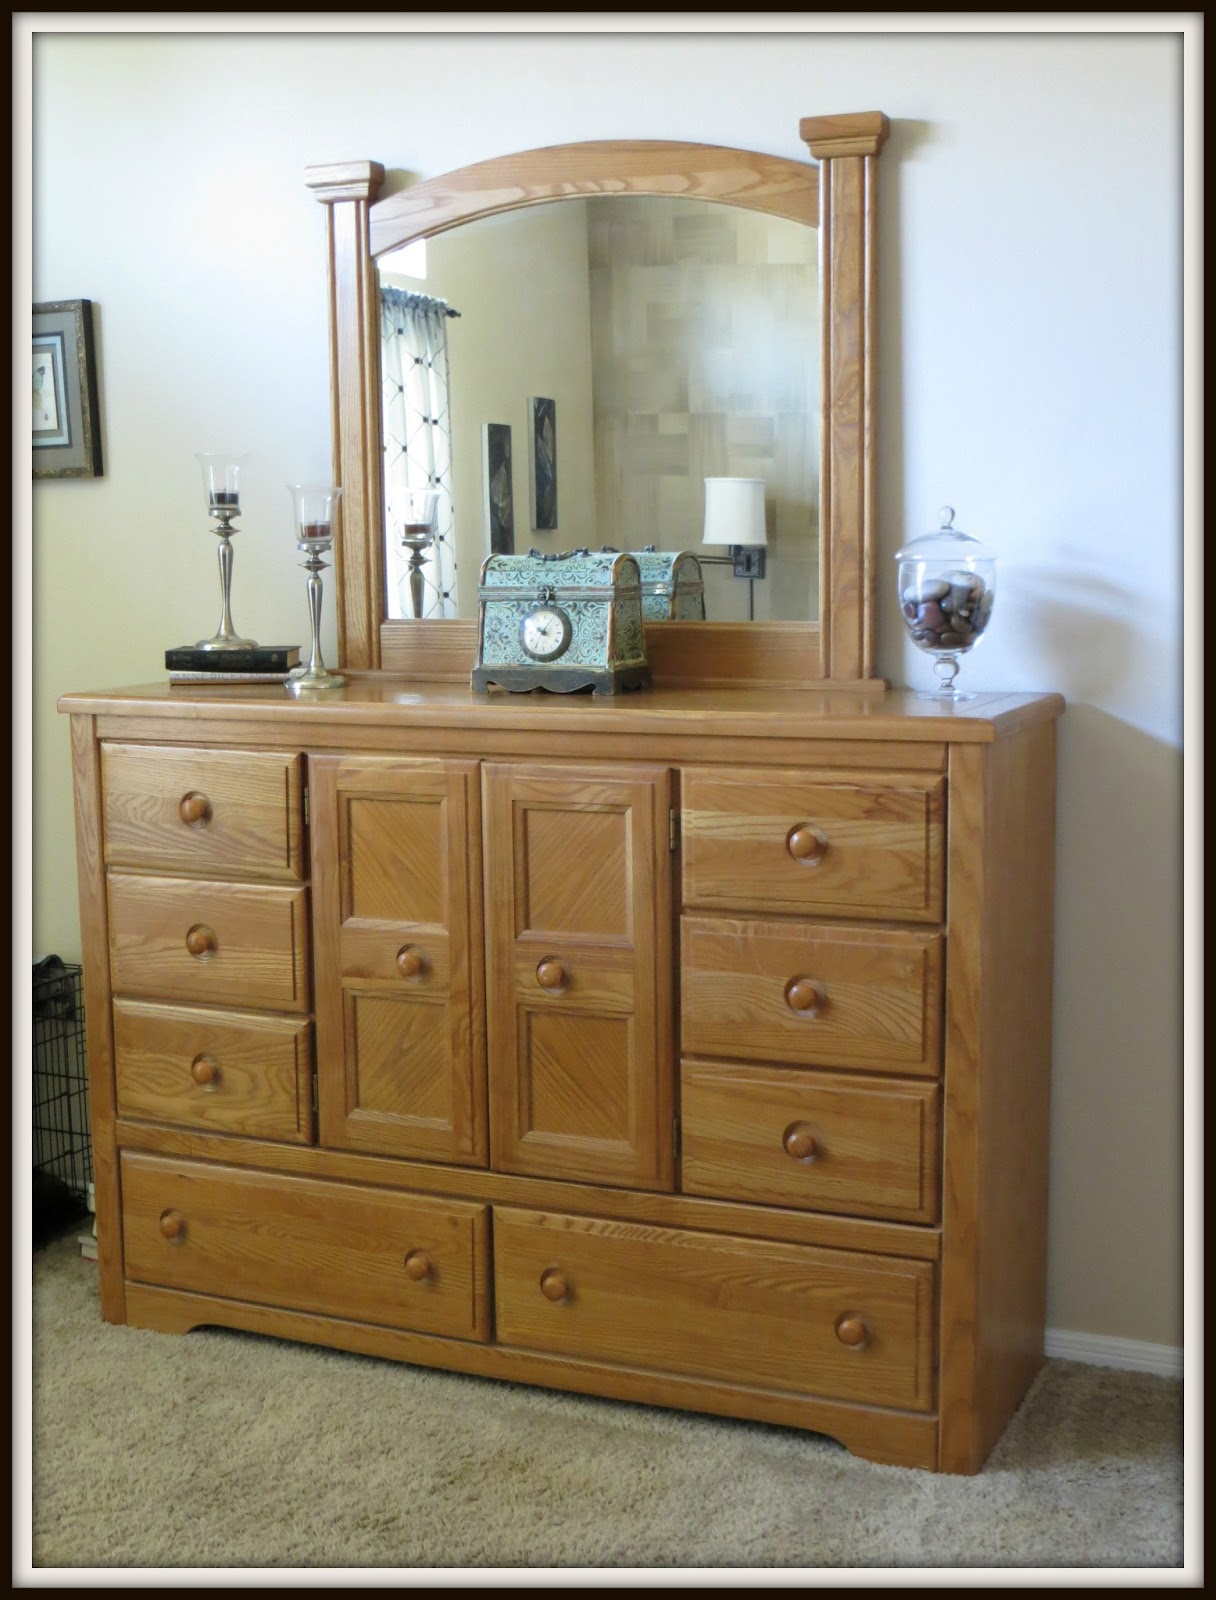 Staining Bedroom Furniture Crafty In Crosby Bedroom Furniture Makeover